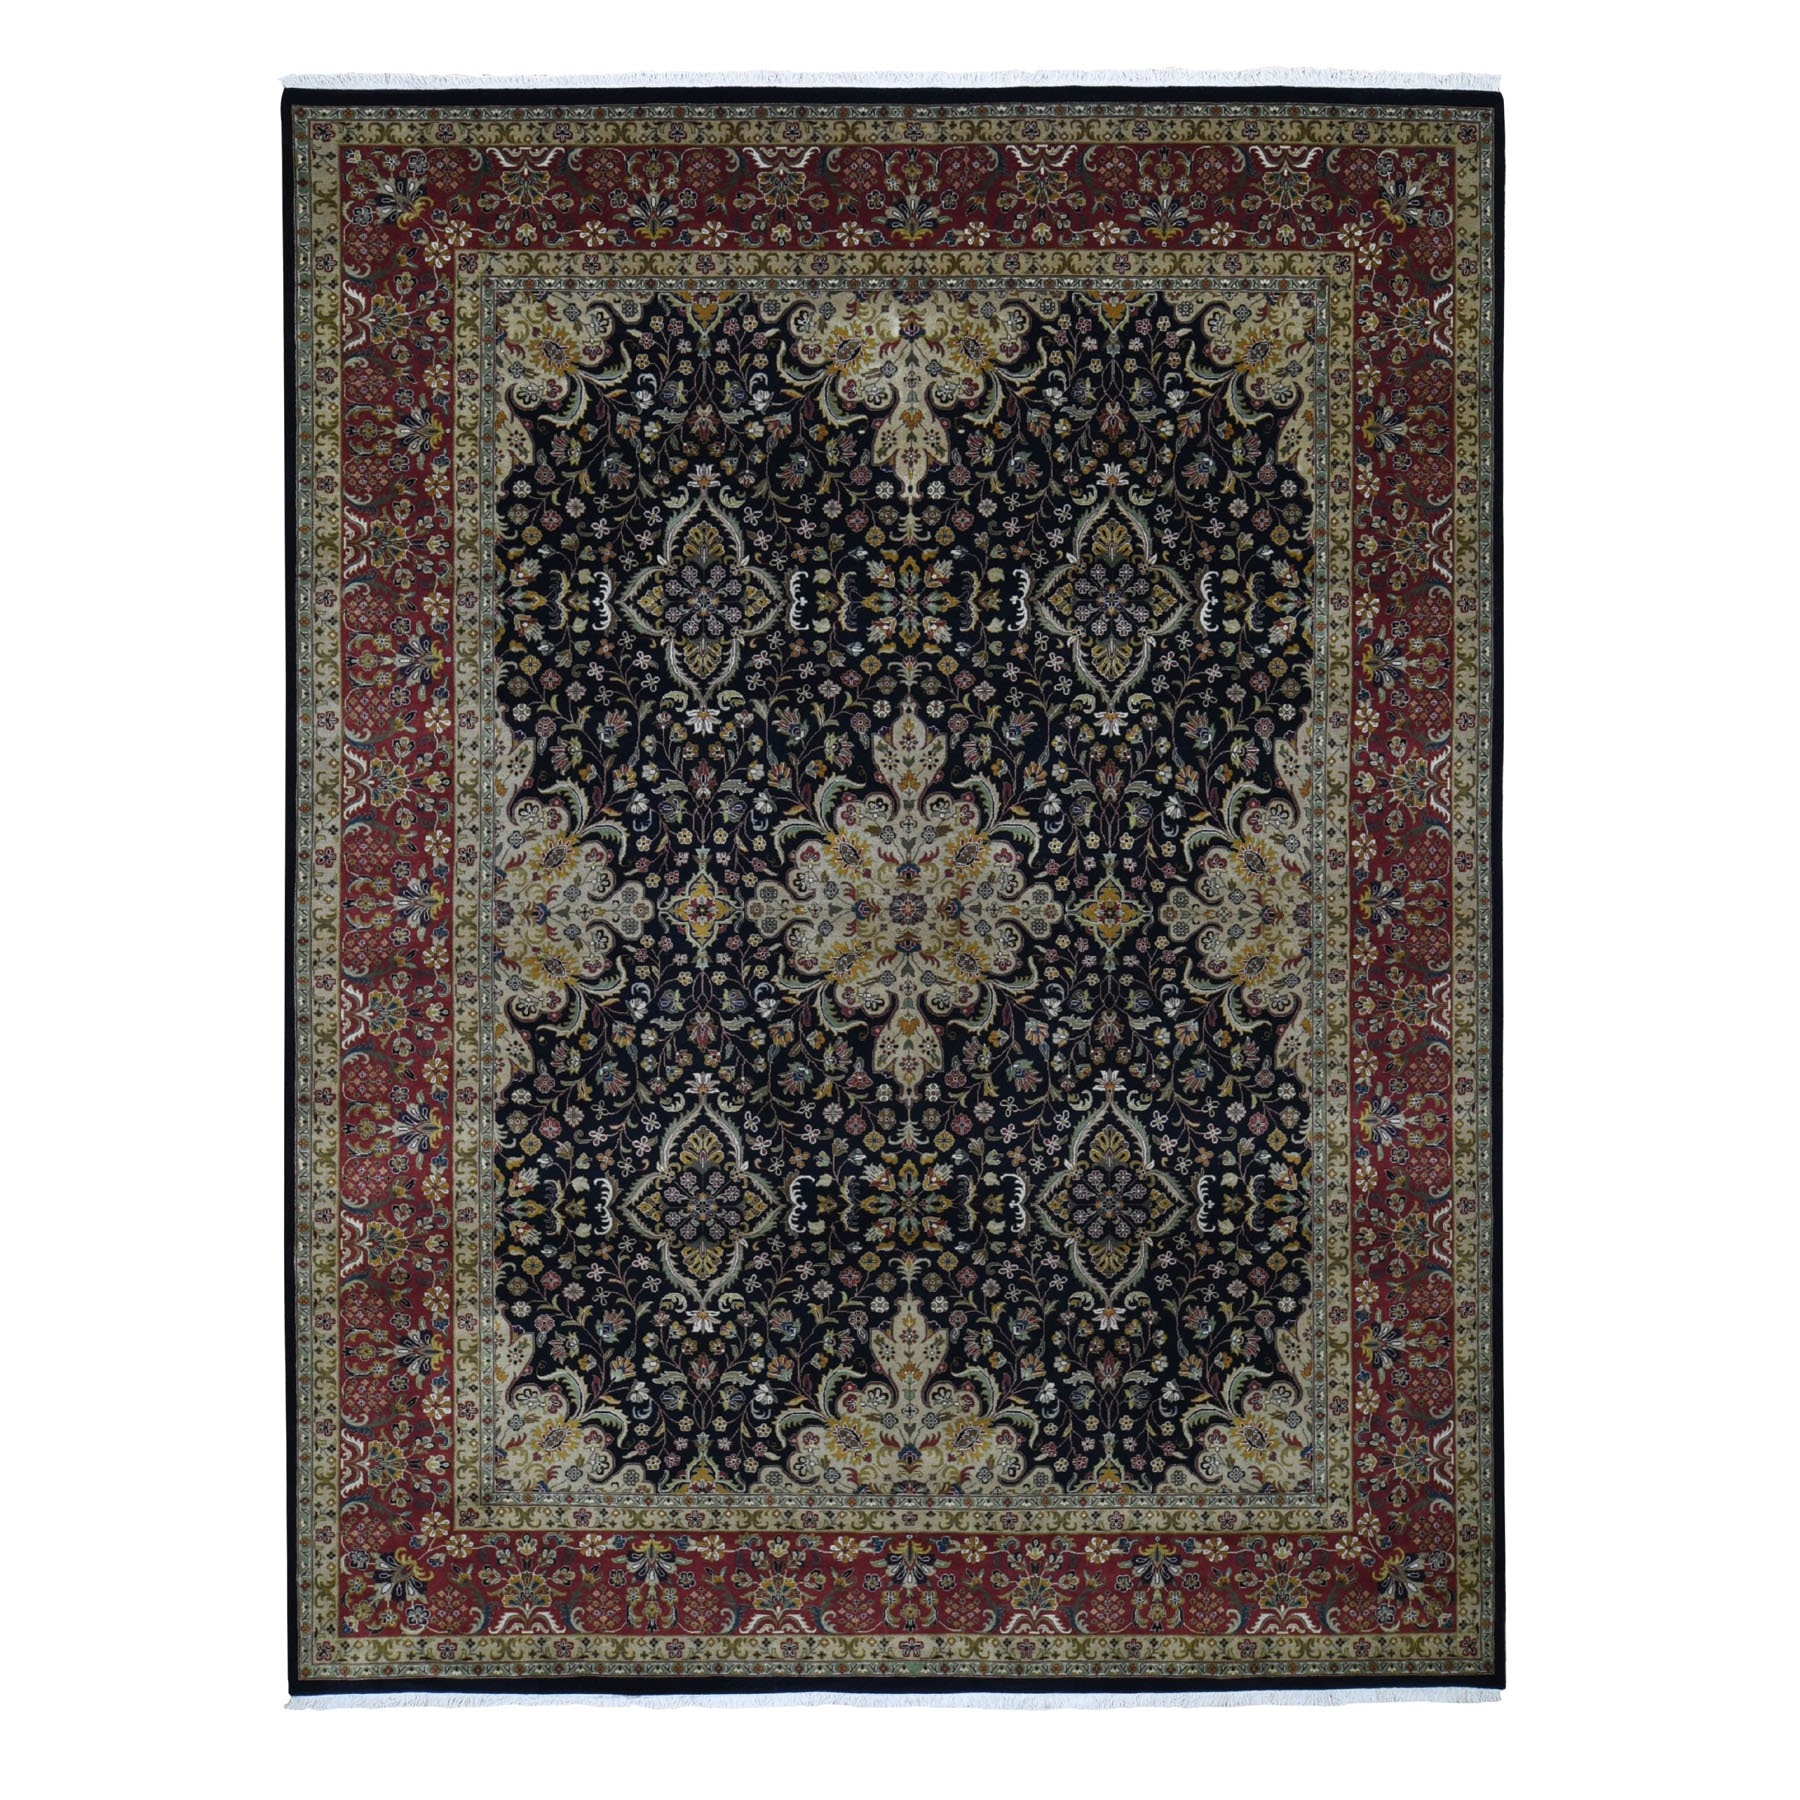 Pirniakan Collection Hand Knotted Black Rug No: 0196694